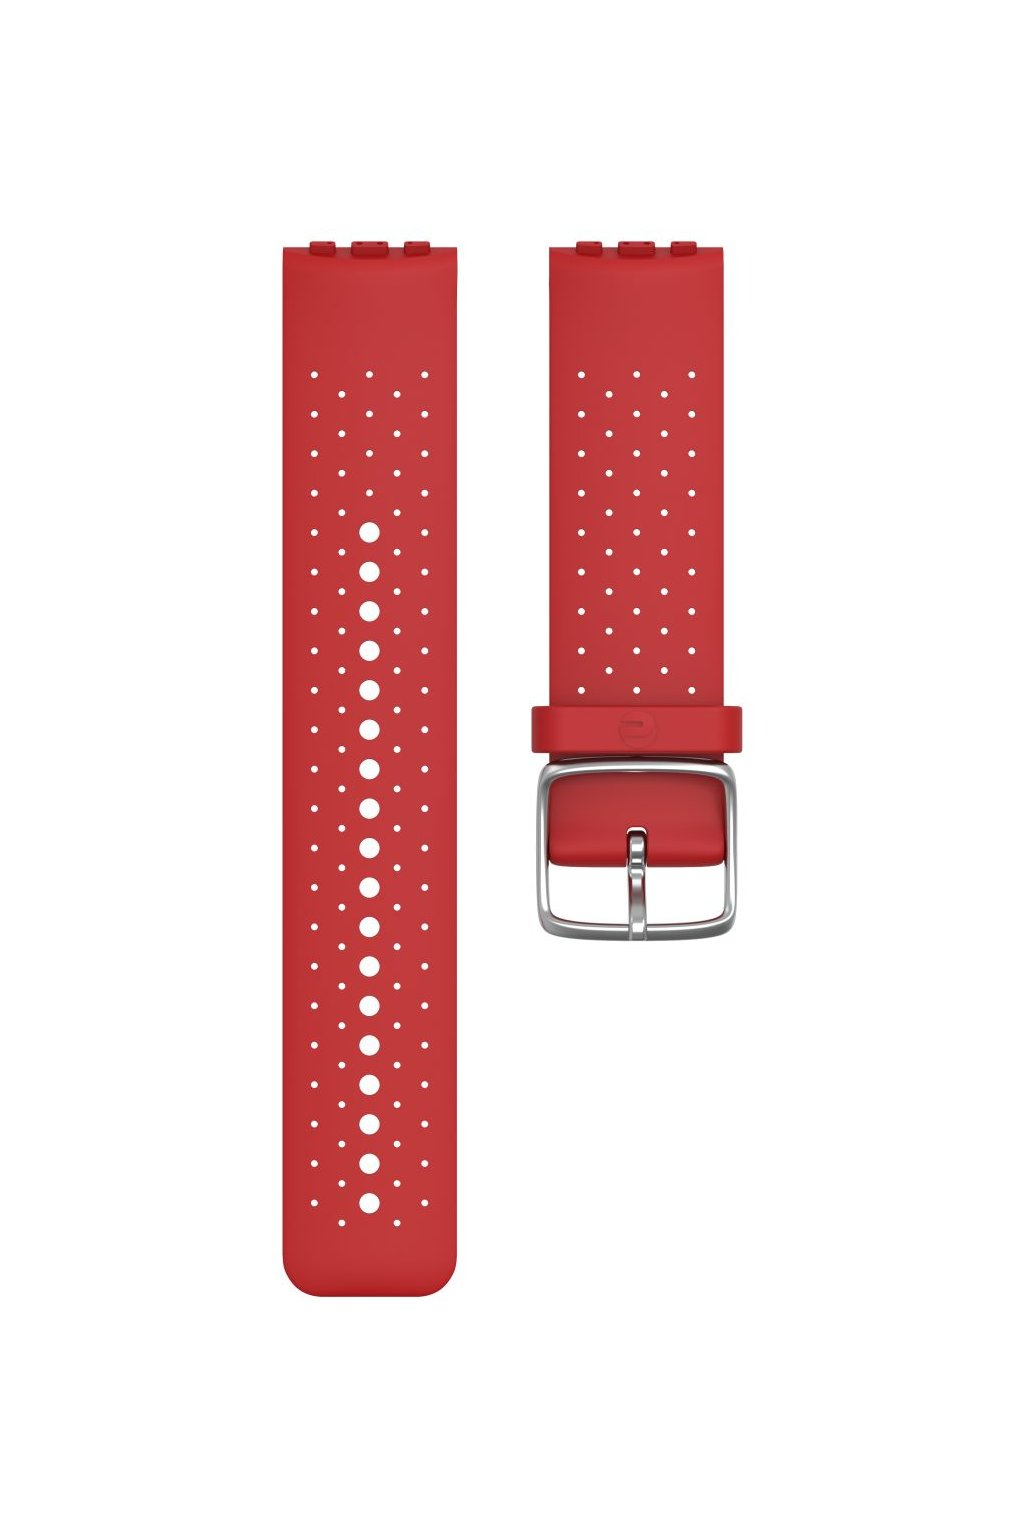 Vantage M accessory silicone wristband front red (1)